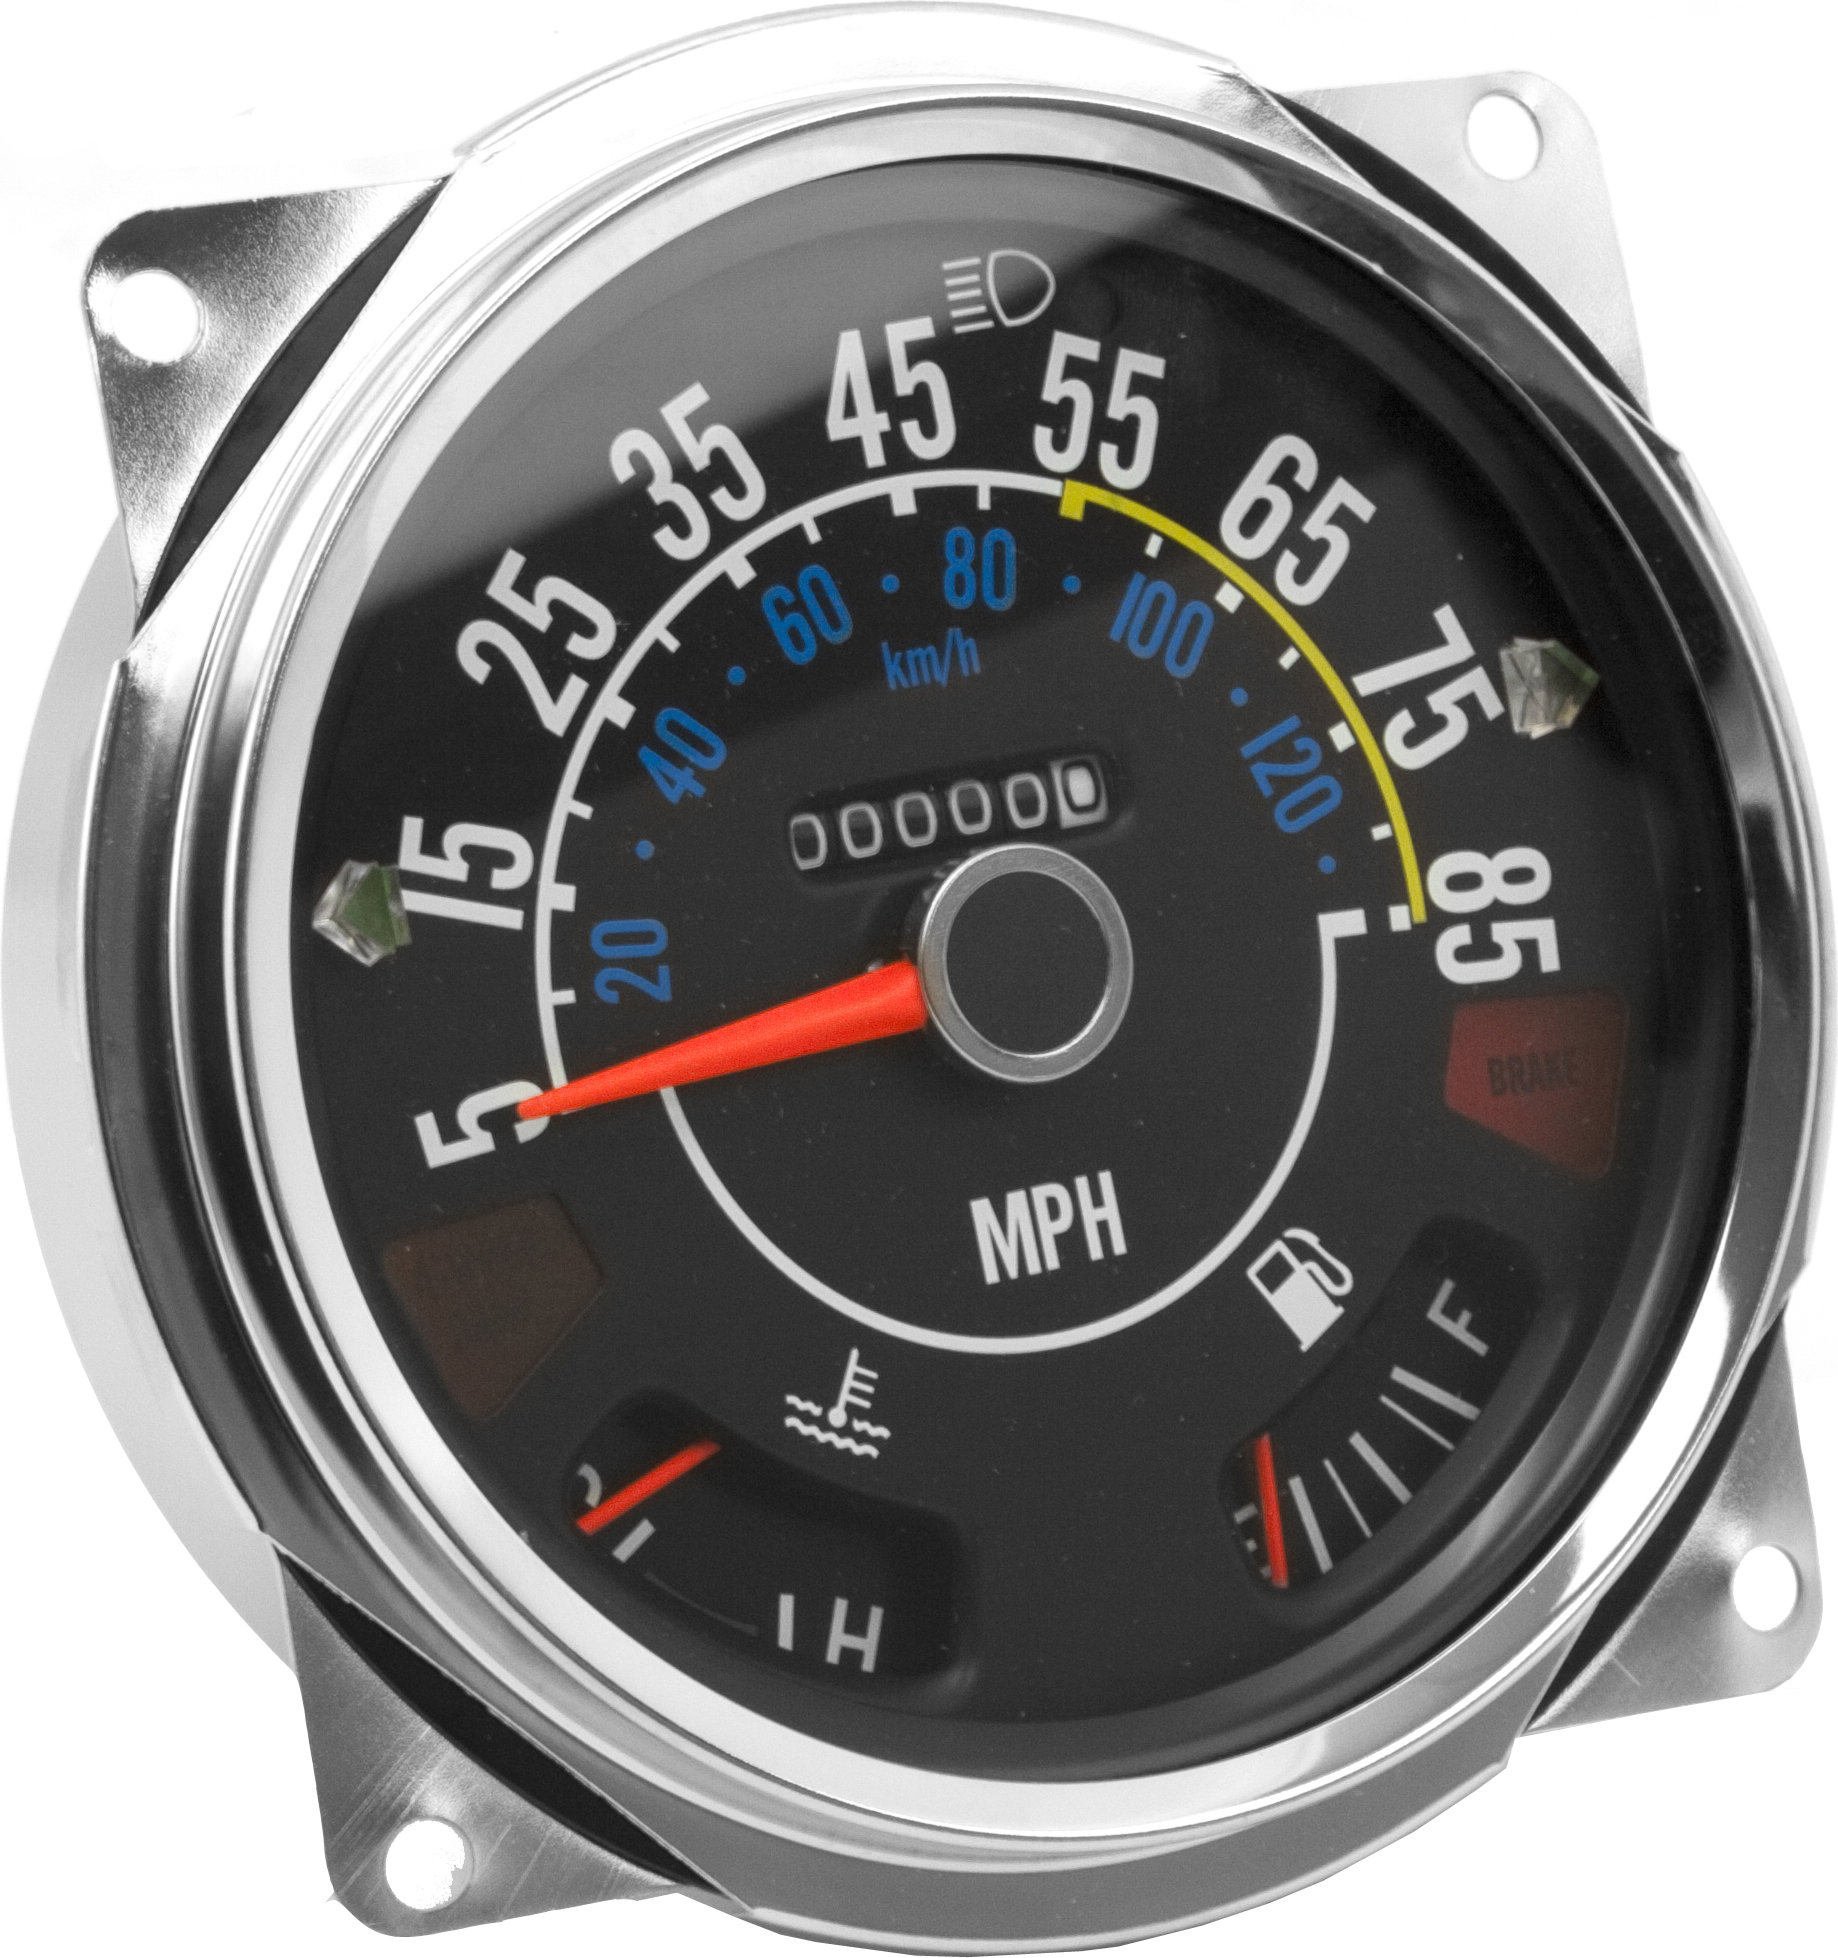 hight resolution of crown automotive j5761110 speedometer cluster 5 85 mph for 80 86 jeep